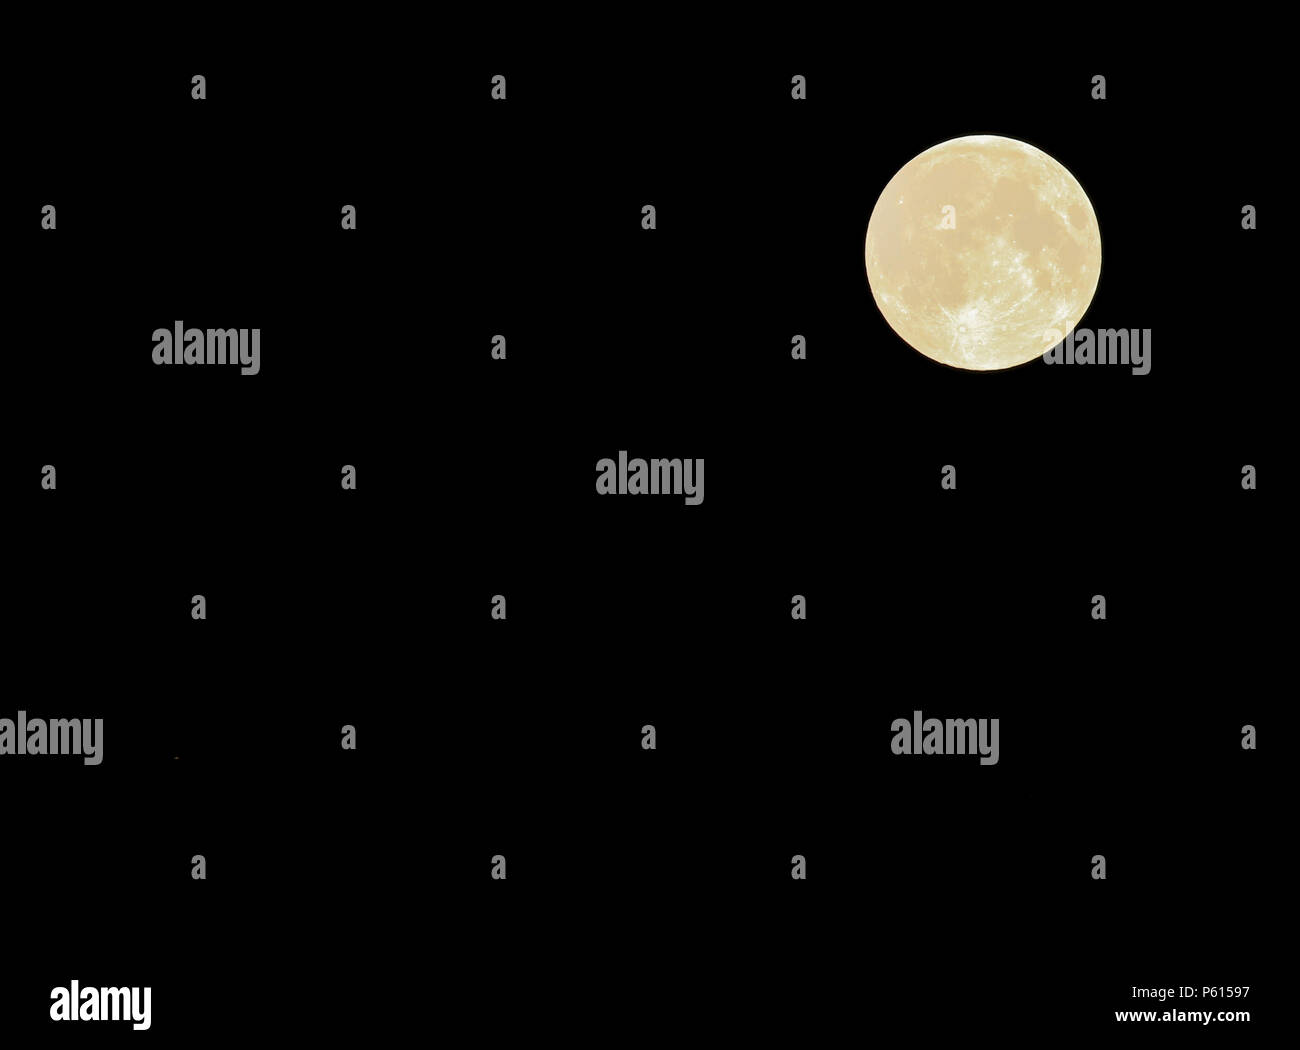 Lurgan, Northern Ireland, UK. 28 June 2018. - the June full moon and Saturn in the night sky. Shot taken at  01.09 BST. Saturn at approximately 7 o'clock position. Credit: David Hunter/Alamy Live News. - Stock Image